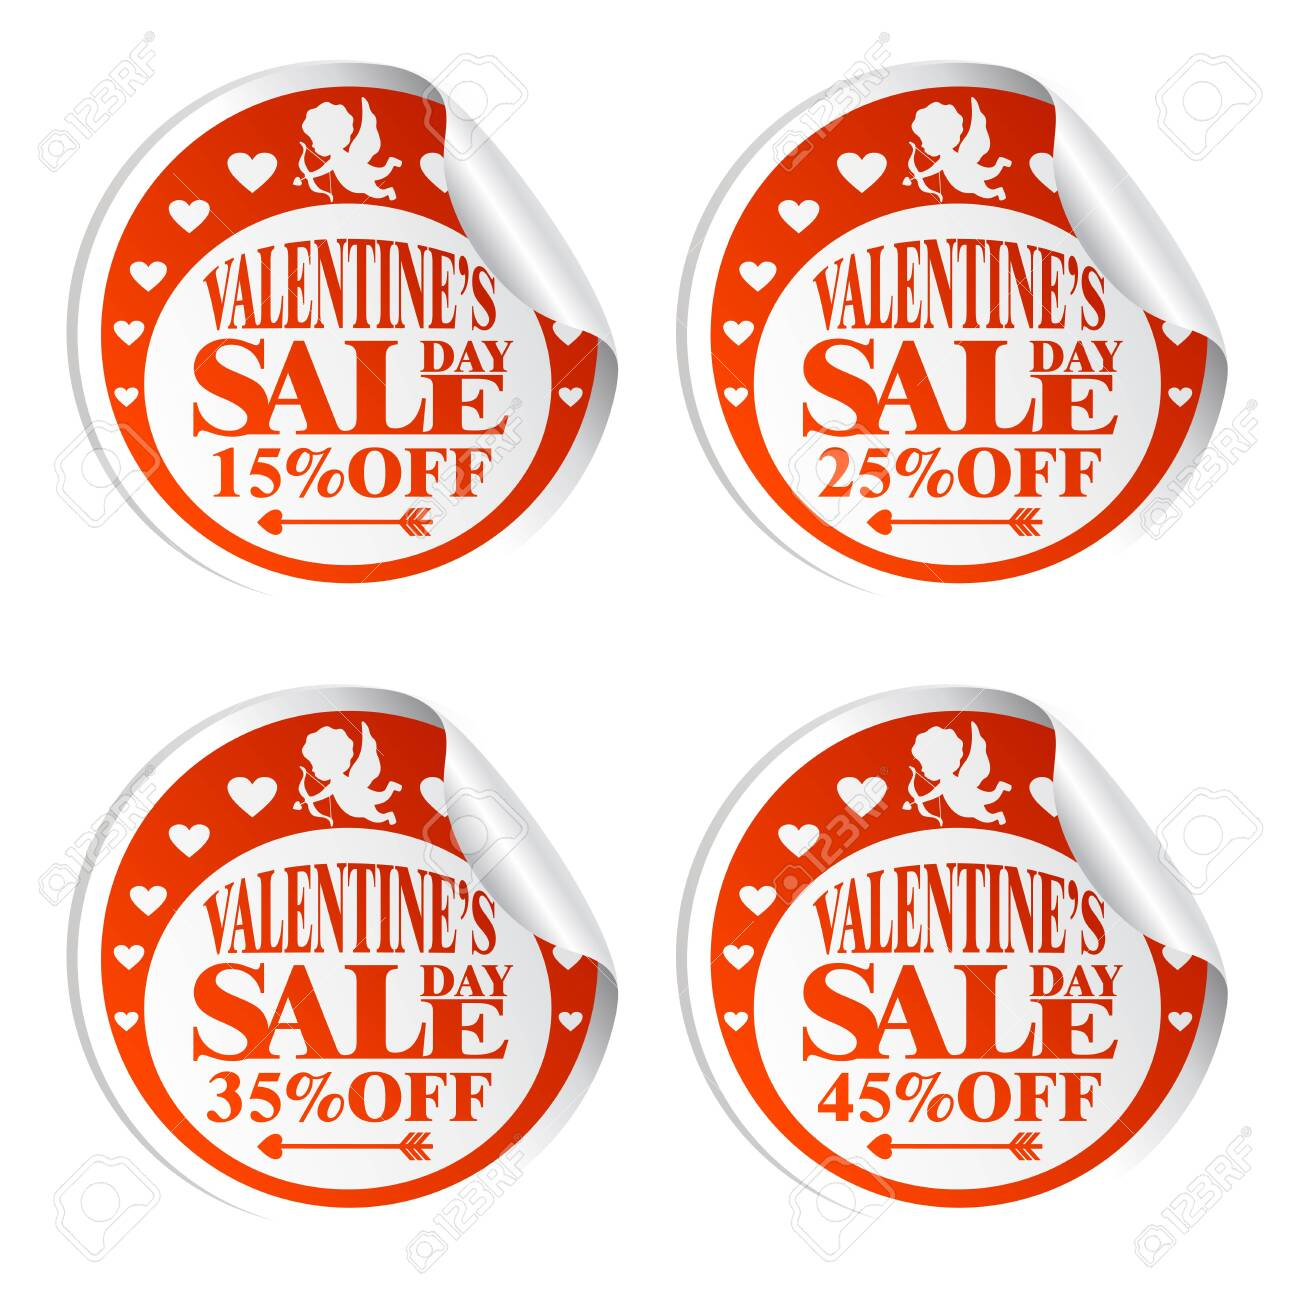 Valentine's Day sale stickers with Cupid 15,25,35,45 percent off.Vector illustration - 122684748